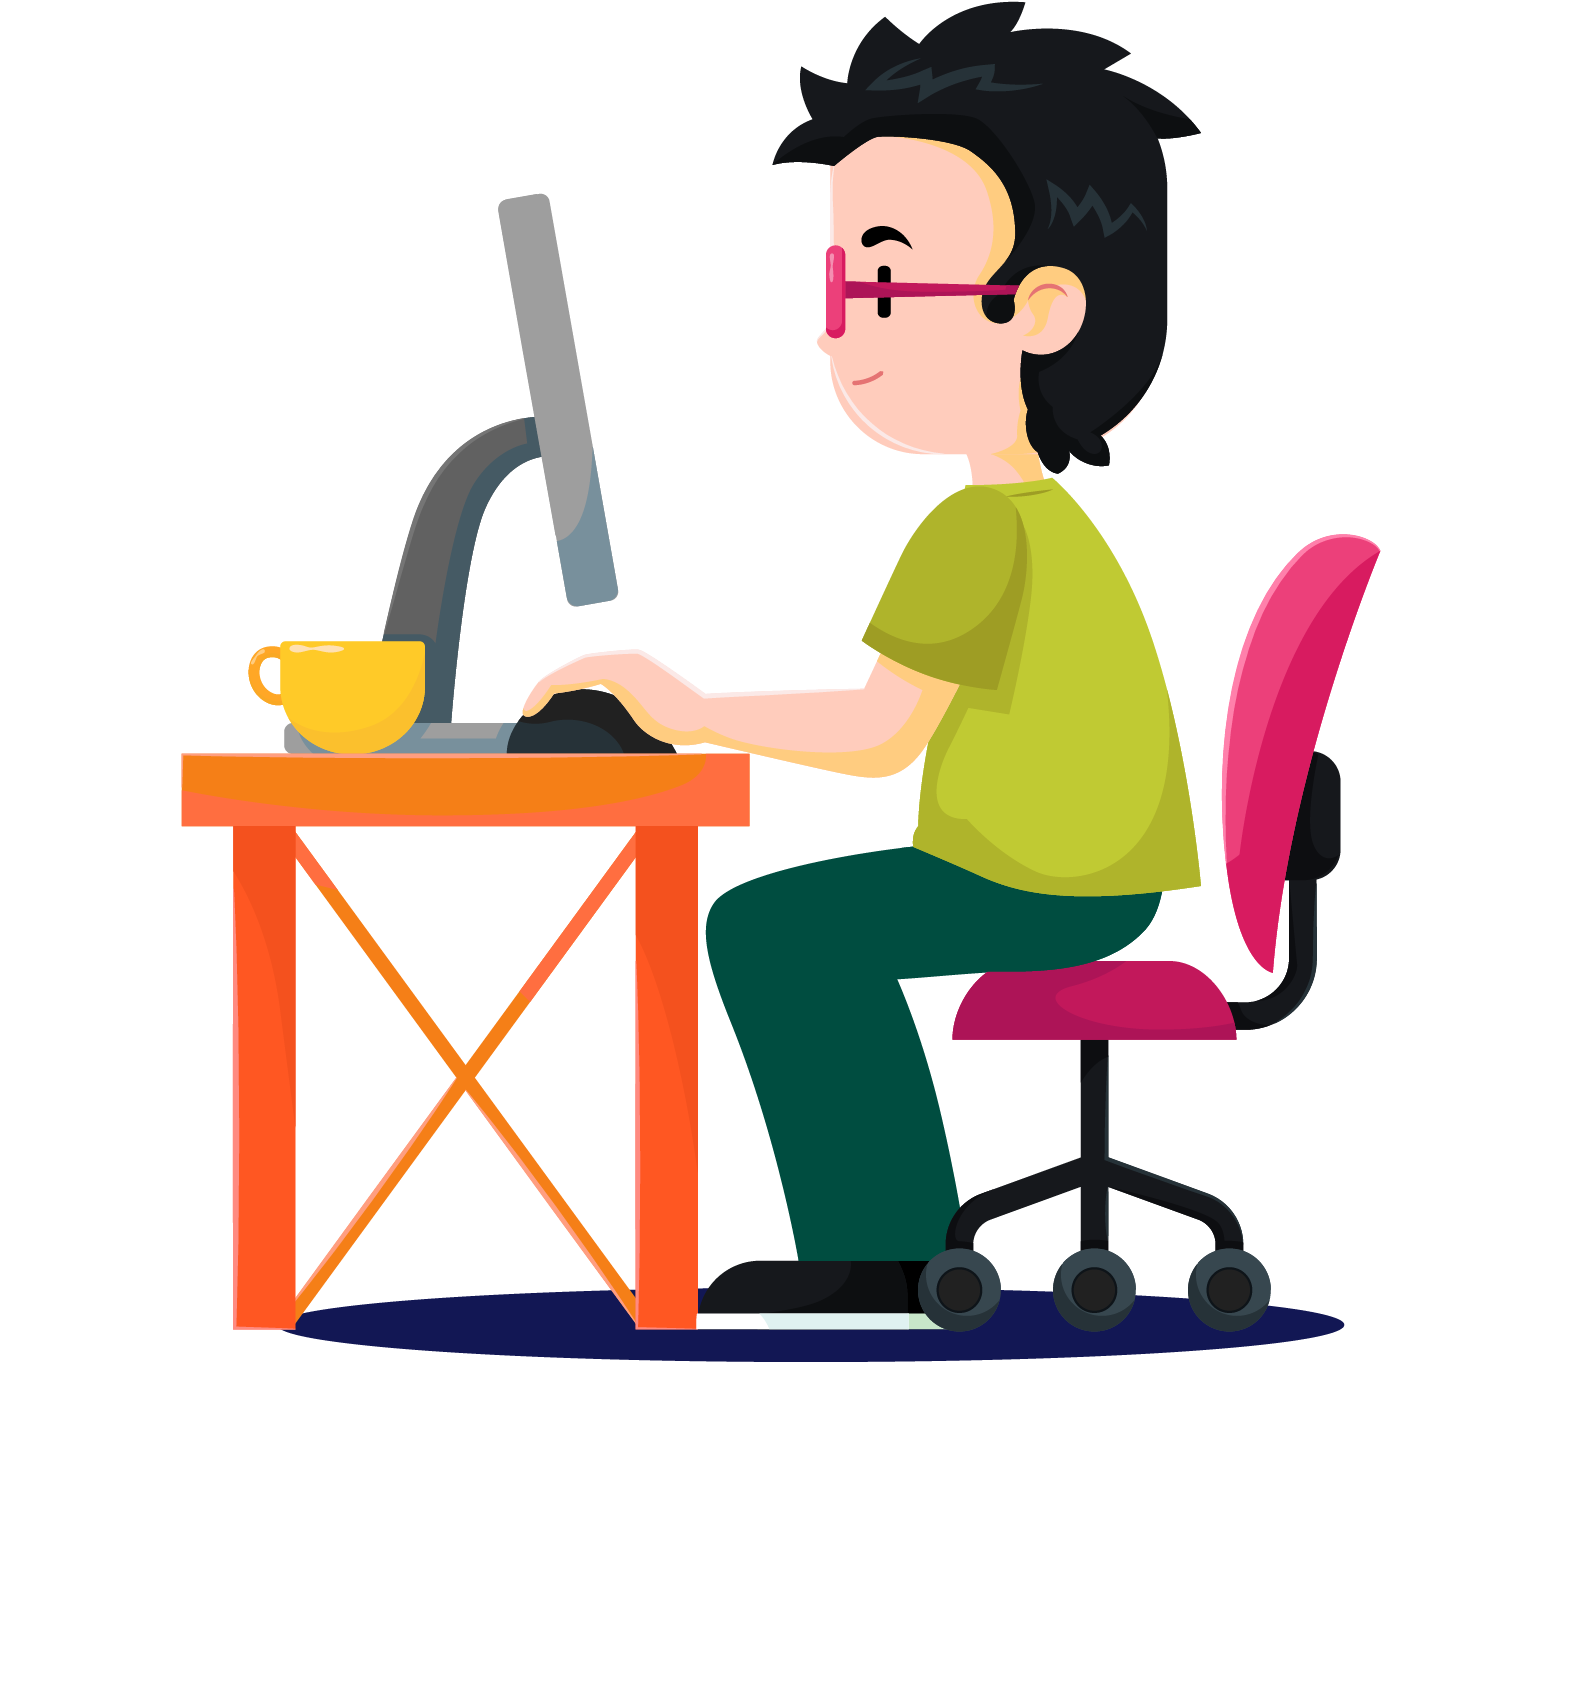 Transparent solutions clip art - Hassle Free And Results Driven Online Solutions For - Twitter We Are Hiring Graphics Designer